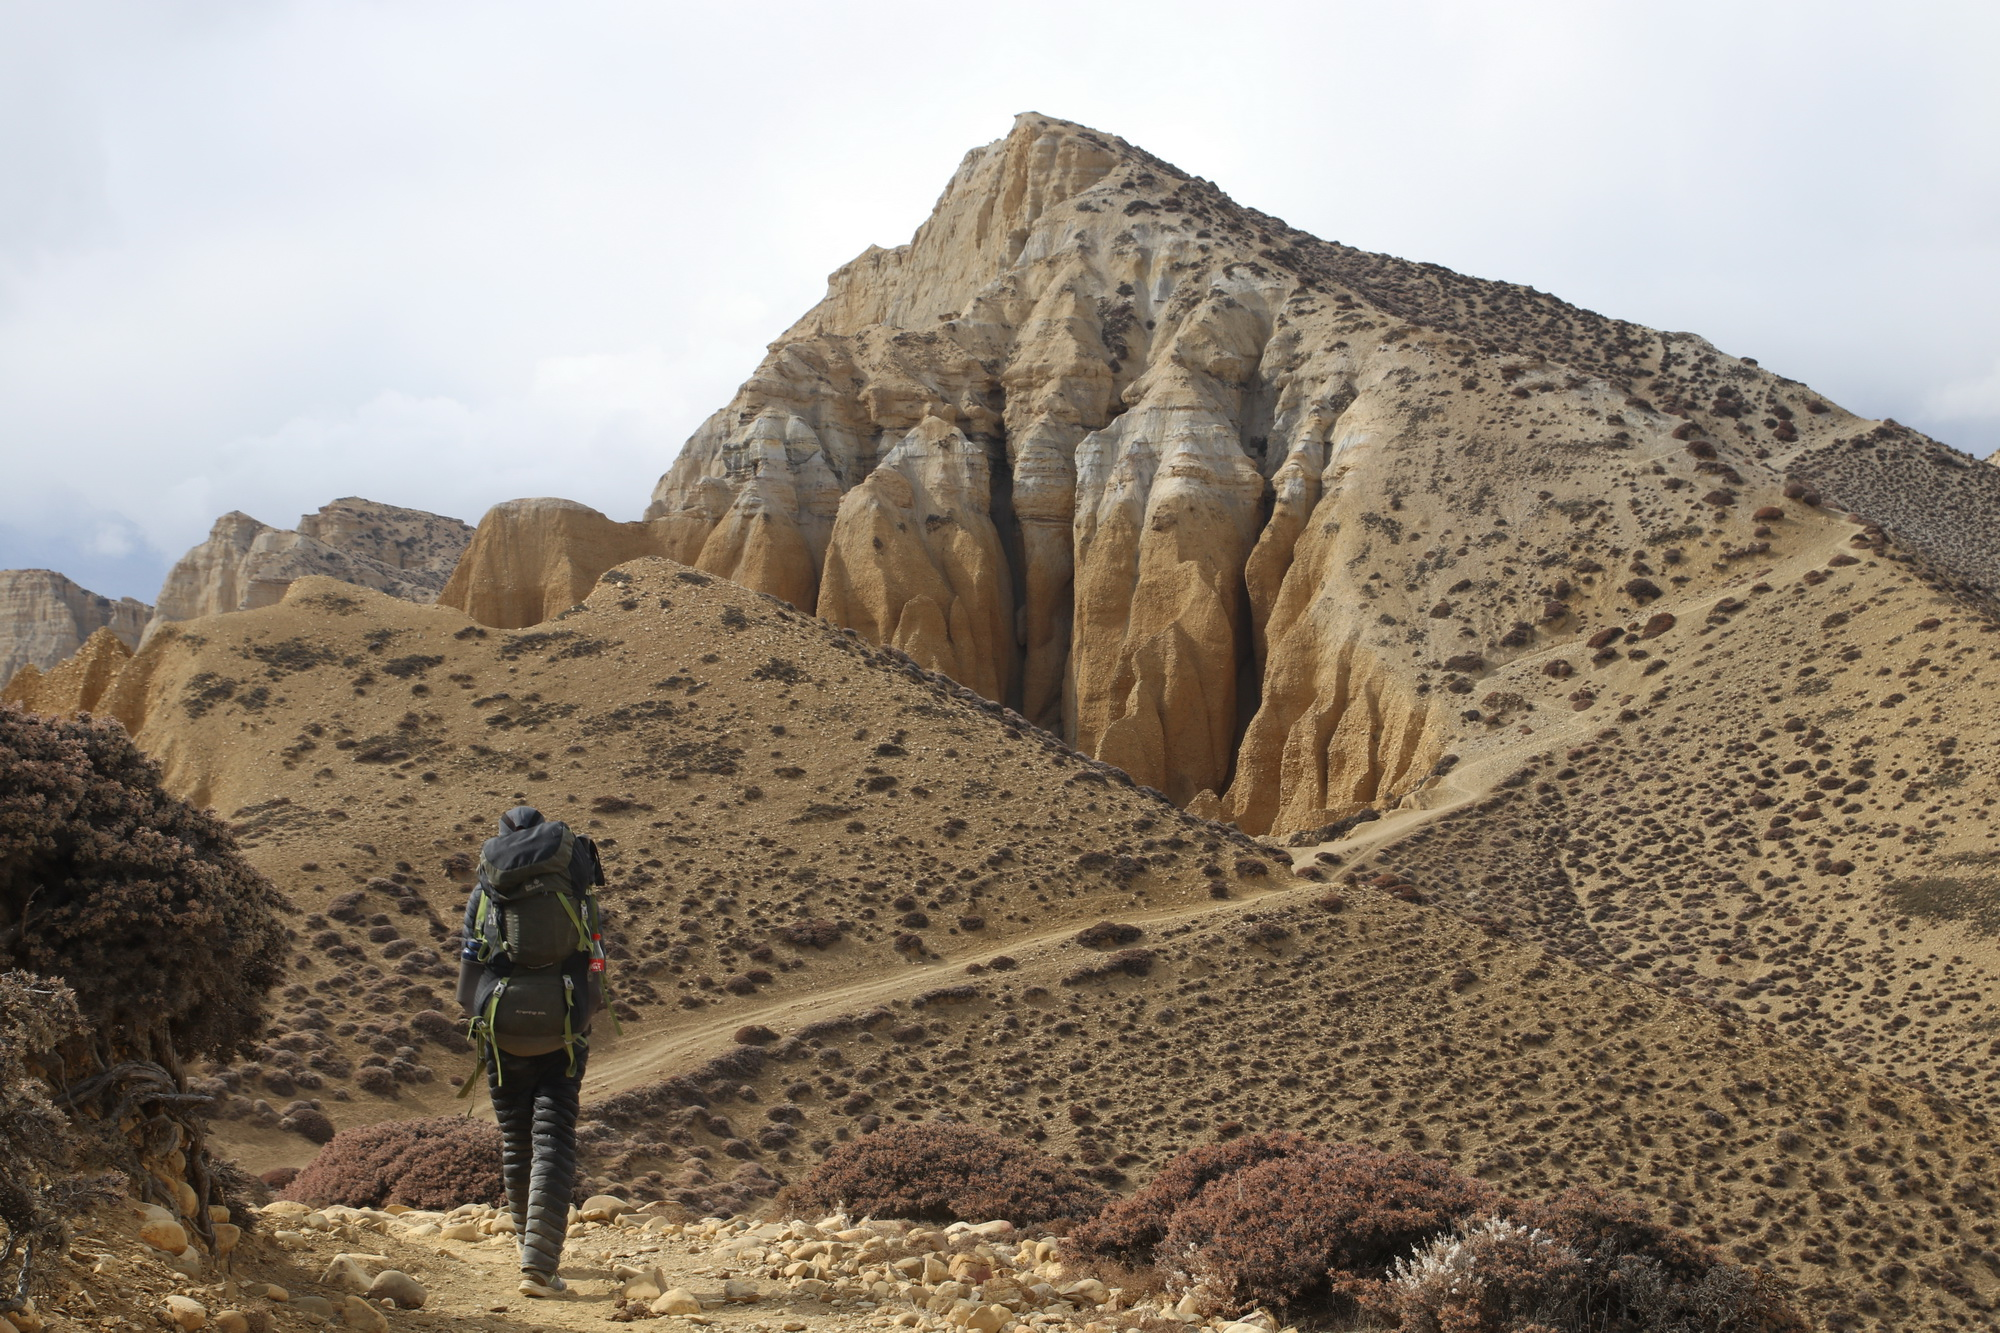 Trekking from Tange to Chhuksang - Upper Mustang Trek